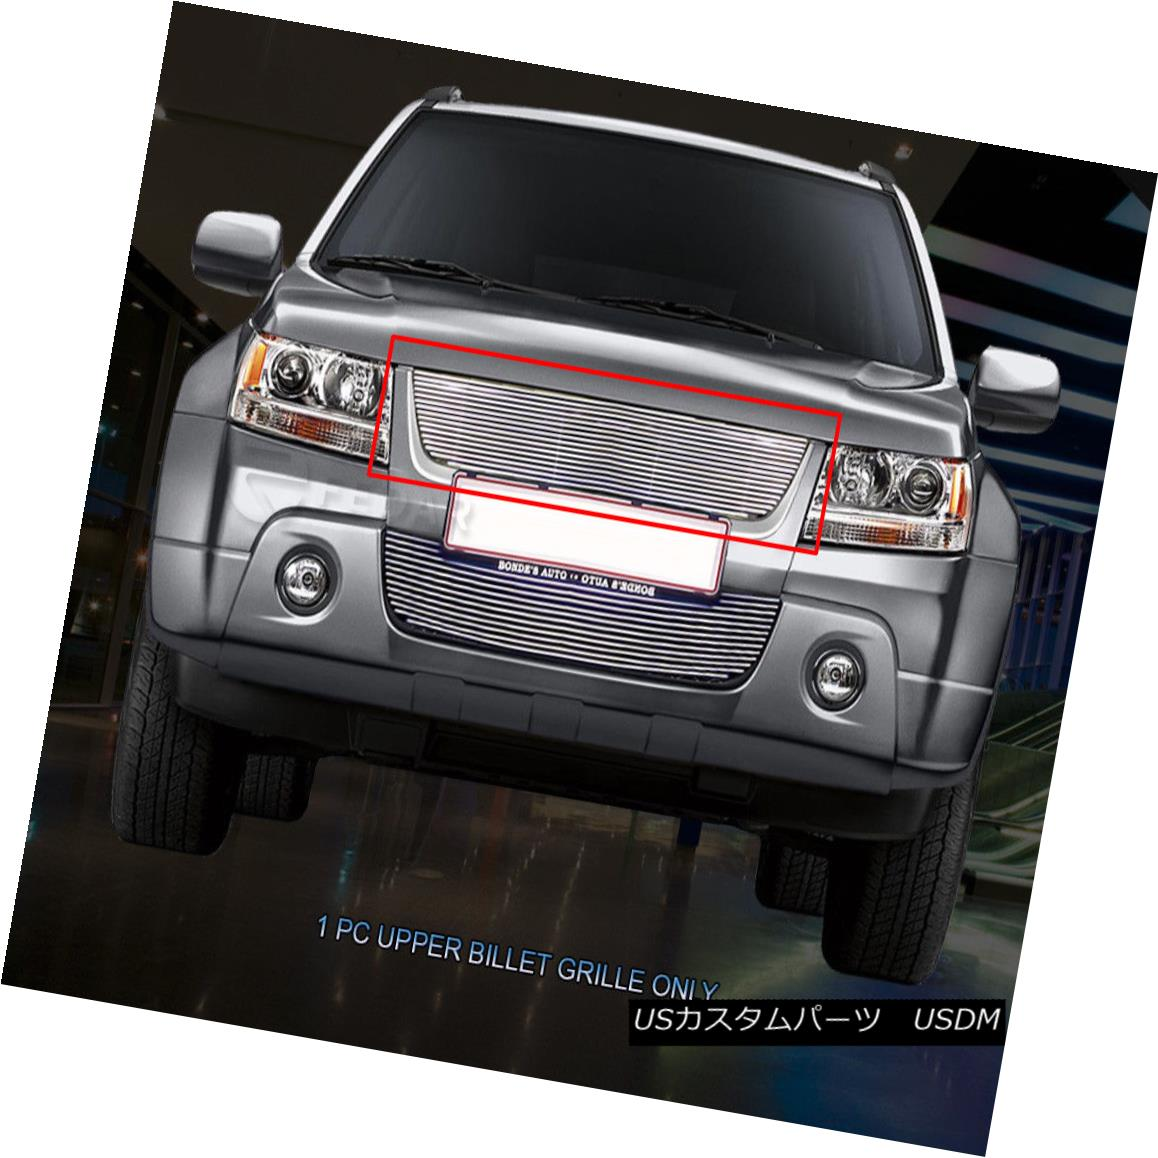 グリル 06-12 Suzuki Grand Vitara Billet Grille Grill Upper 1PC Fedar 06-12 Suzuki Grand Vitaraビレットグリルグリルアッパー1PC Fedar